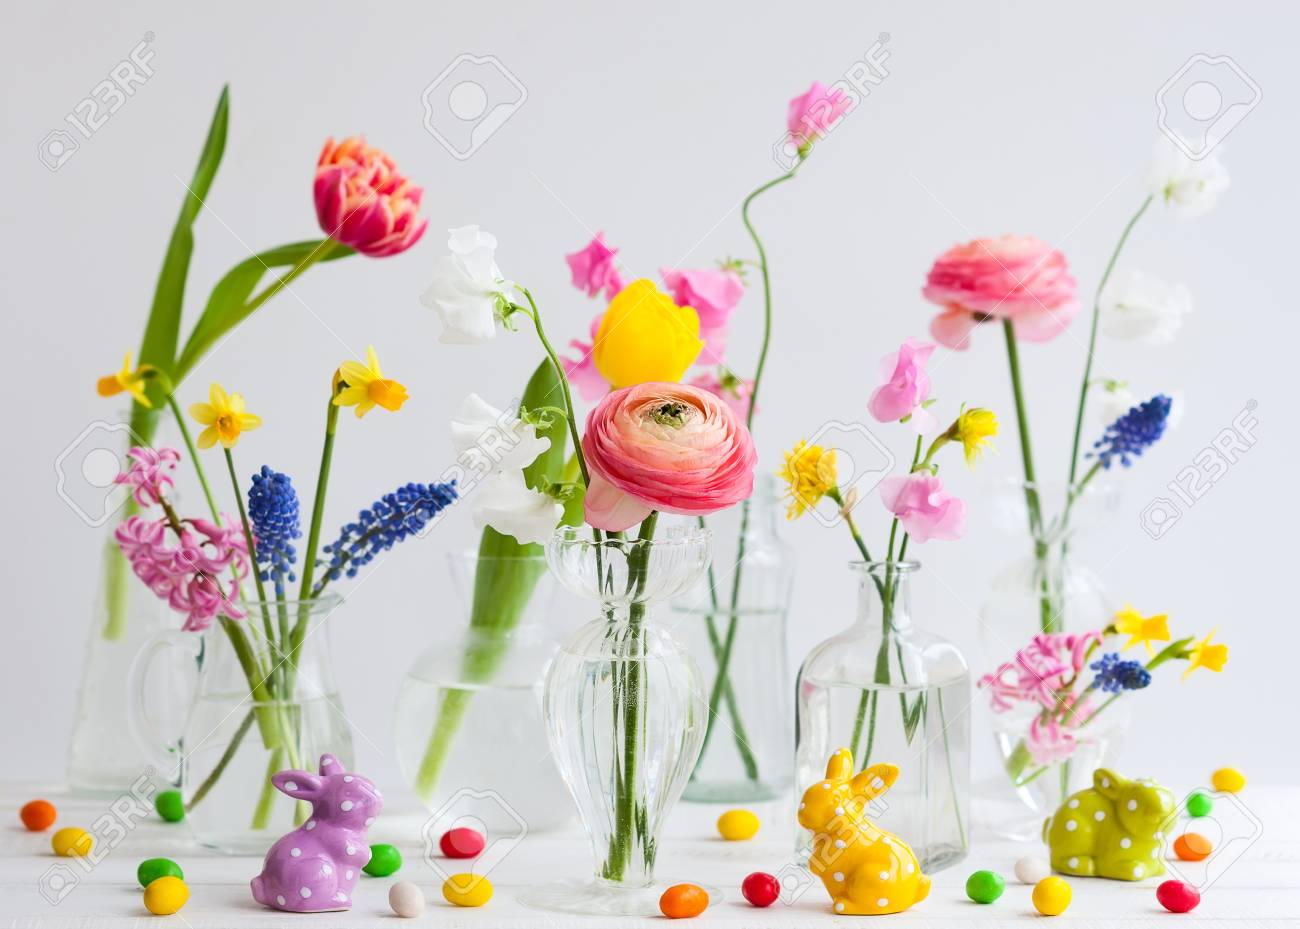 Beautiful flowers bouquets in glass vases on festive Easter table. Colored Easter eggs in egg cups - 93388904